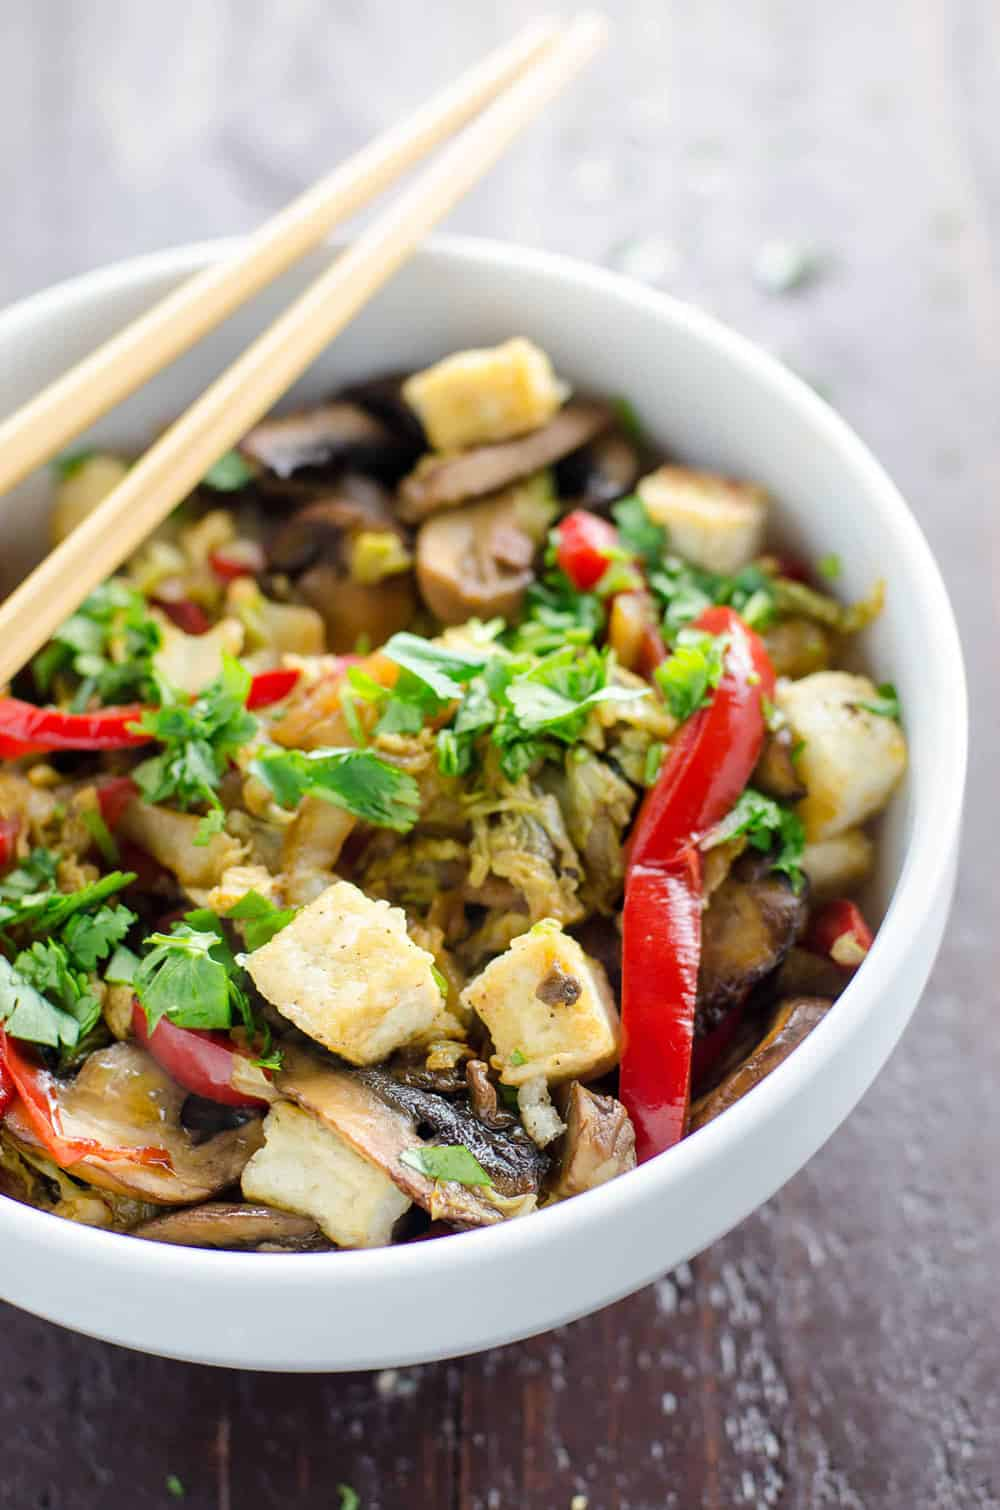 Napa Cabbage Stir Fry With Salt And Pepper Tofu